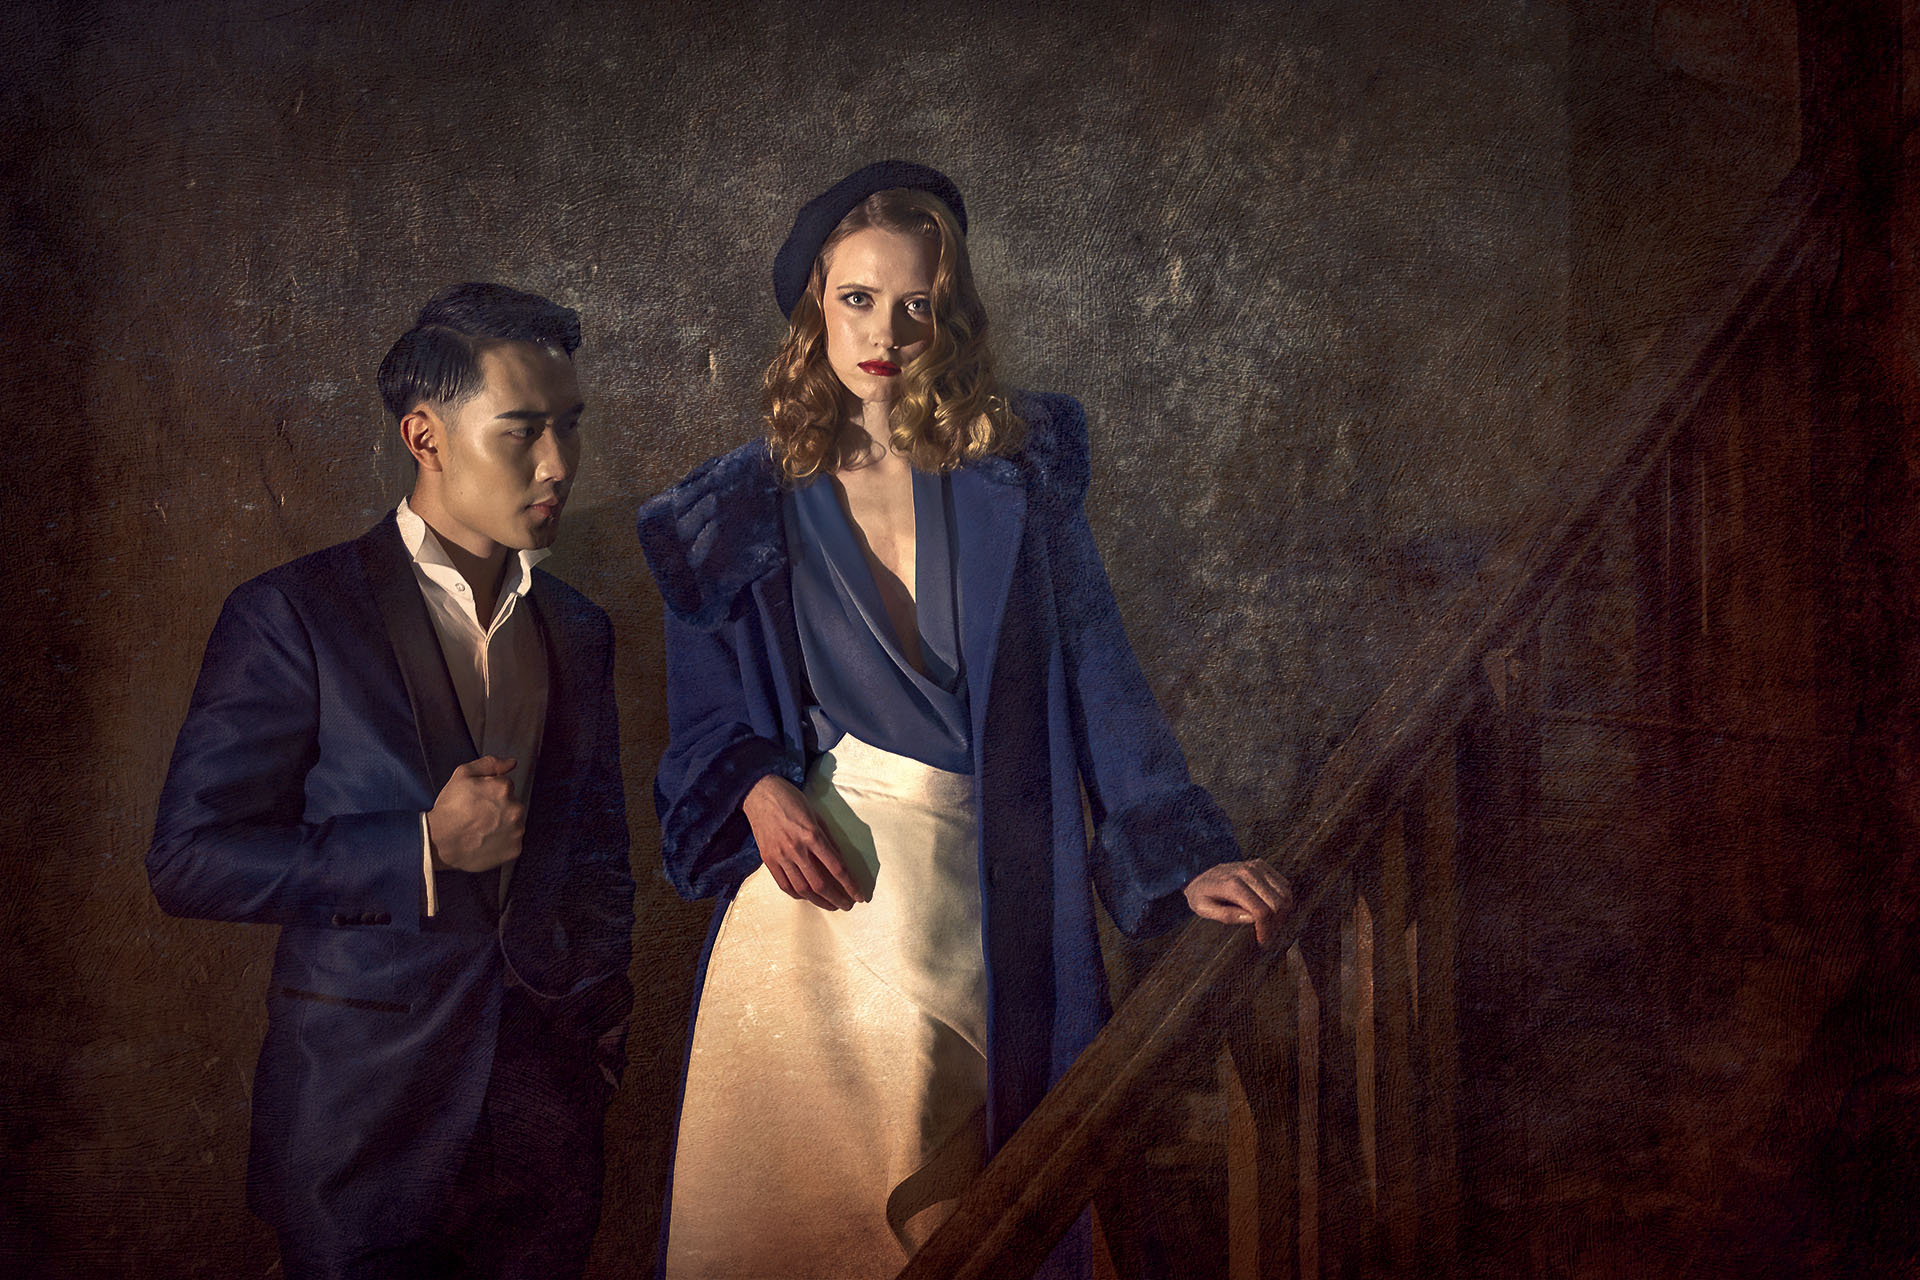 vintage couple on staircase with texture